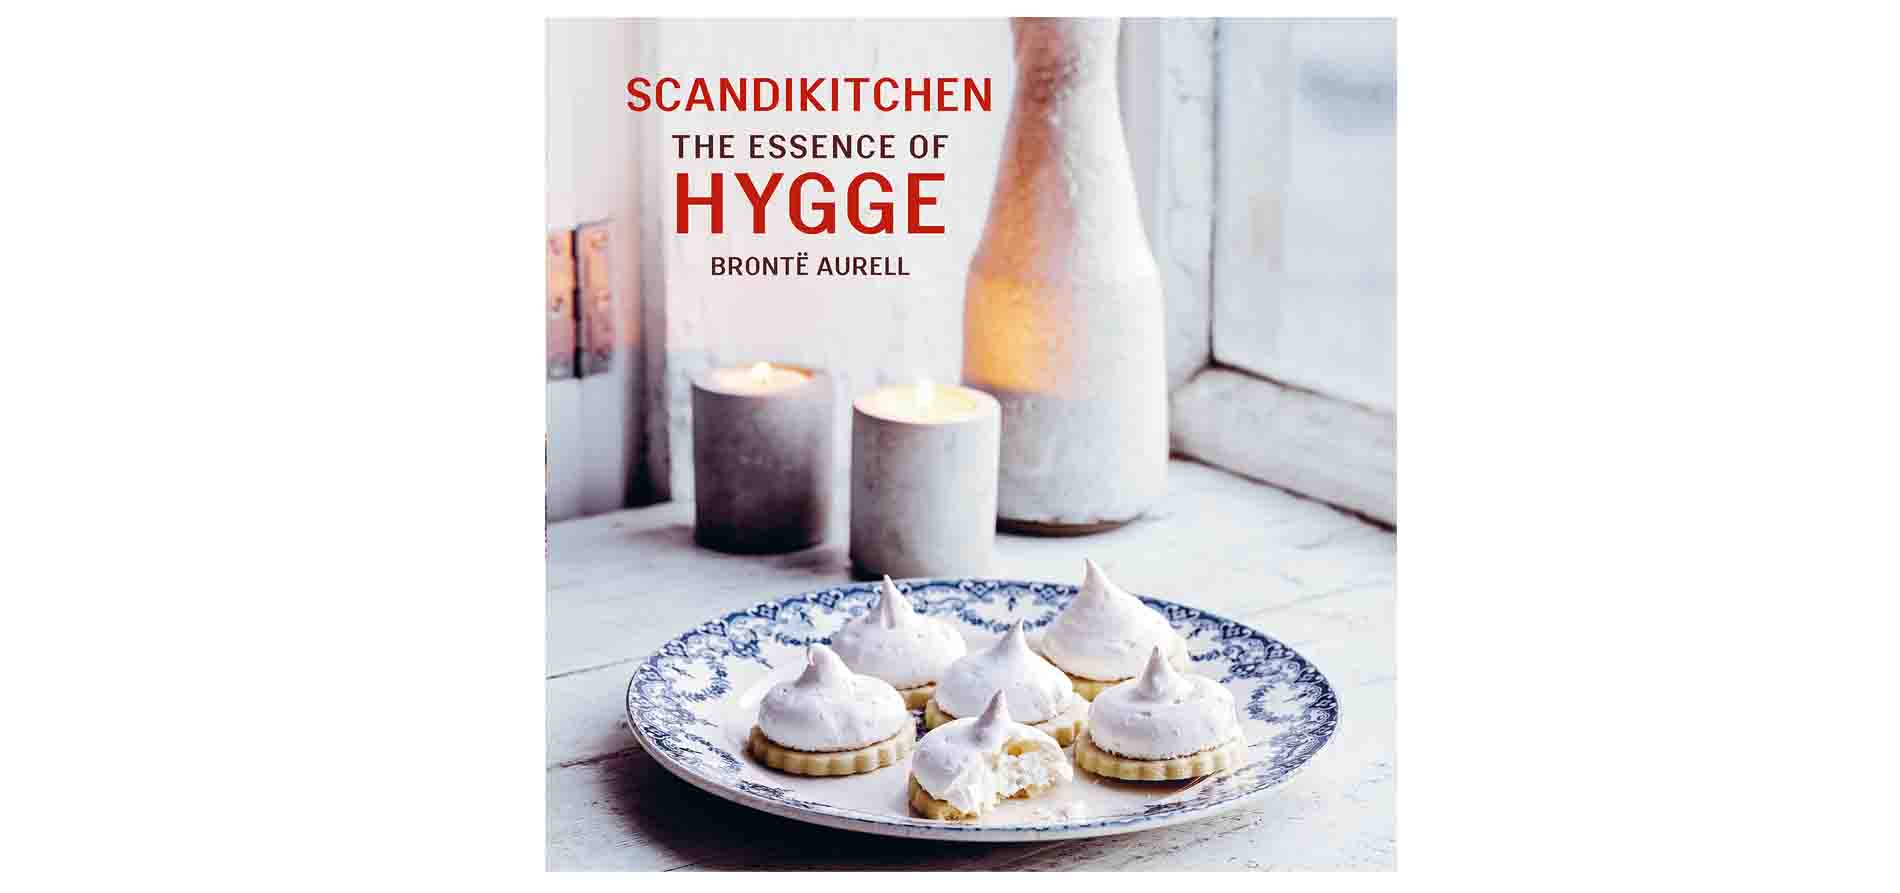 Scandikitchen The Essence Of Hygge